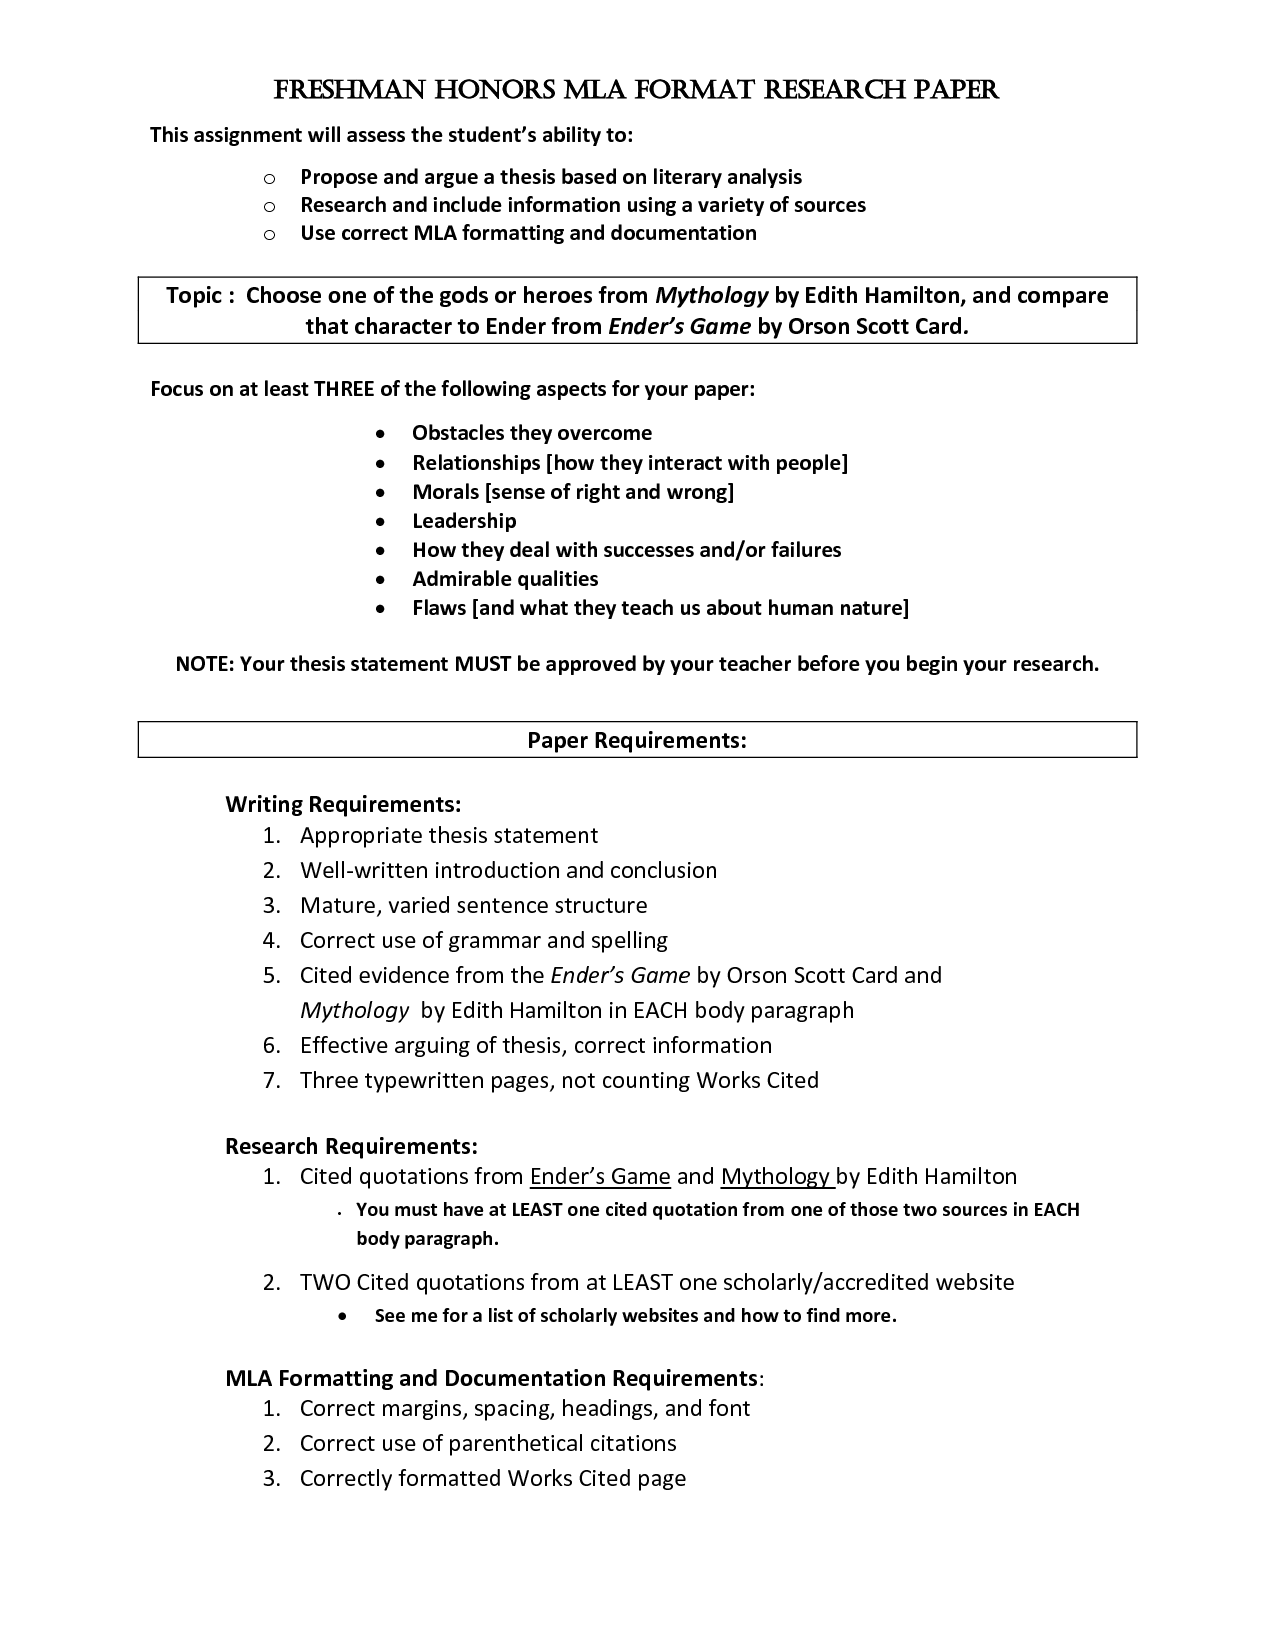 Dissertation research proposal help college student